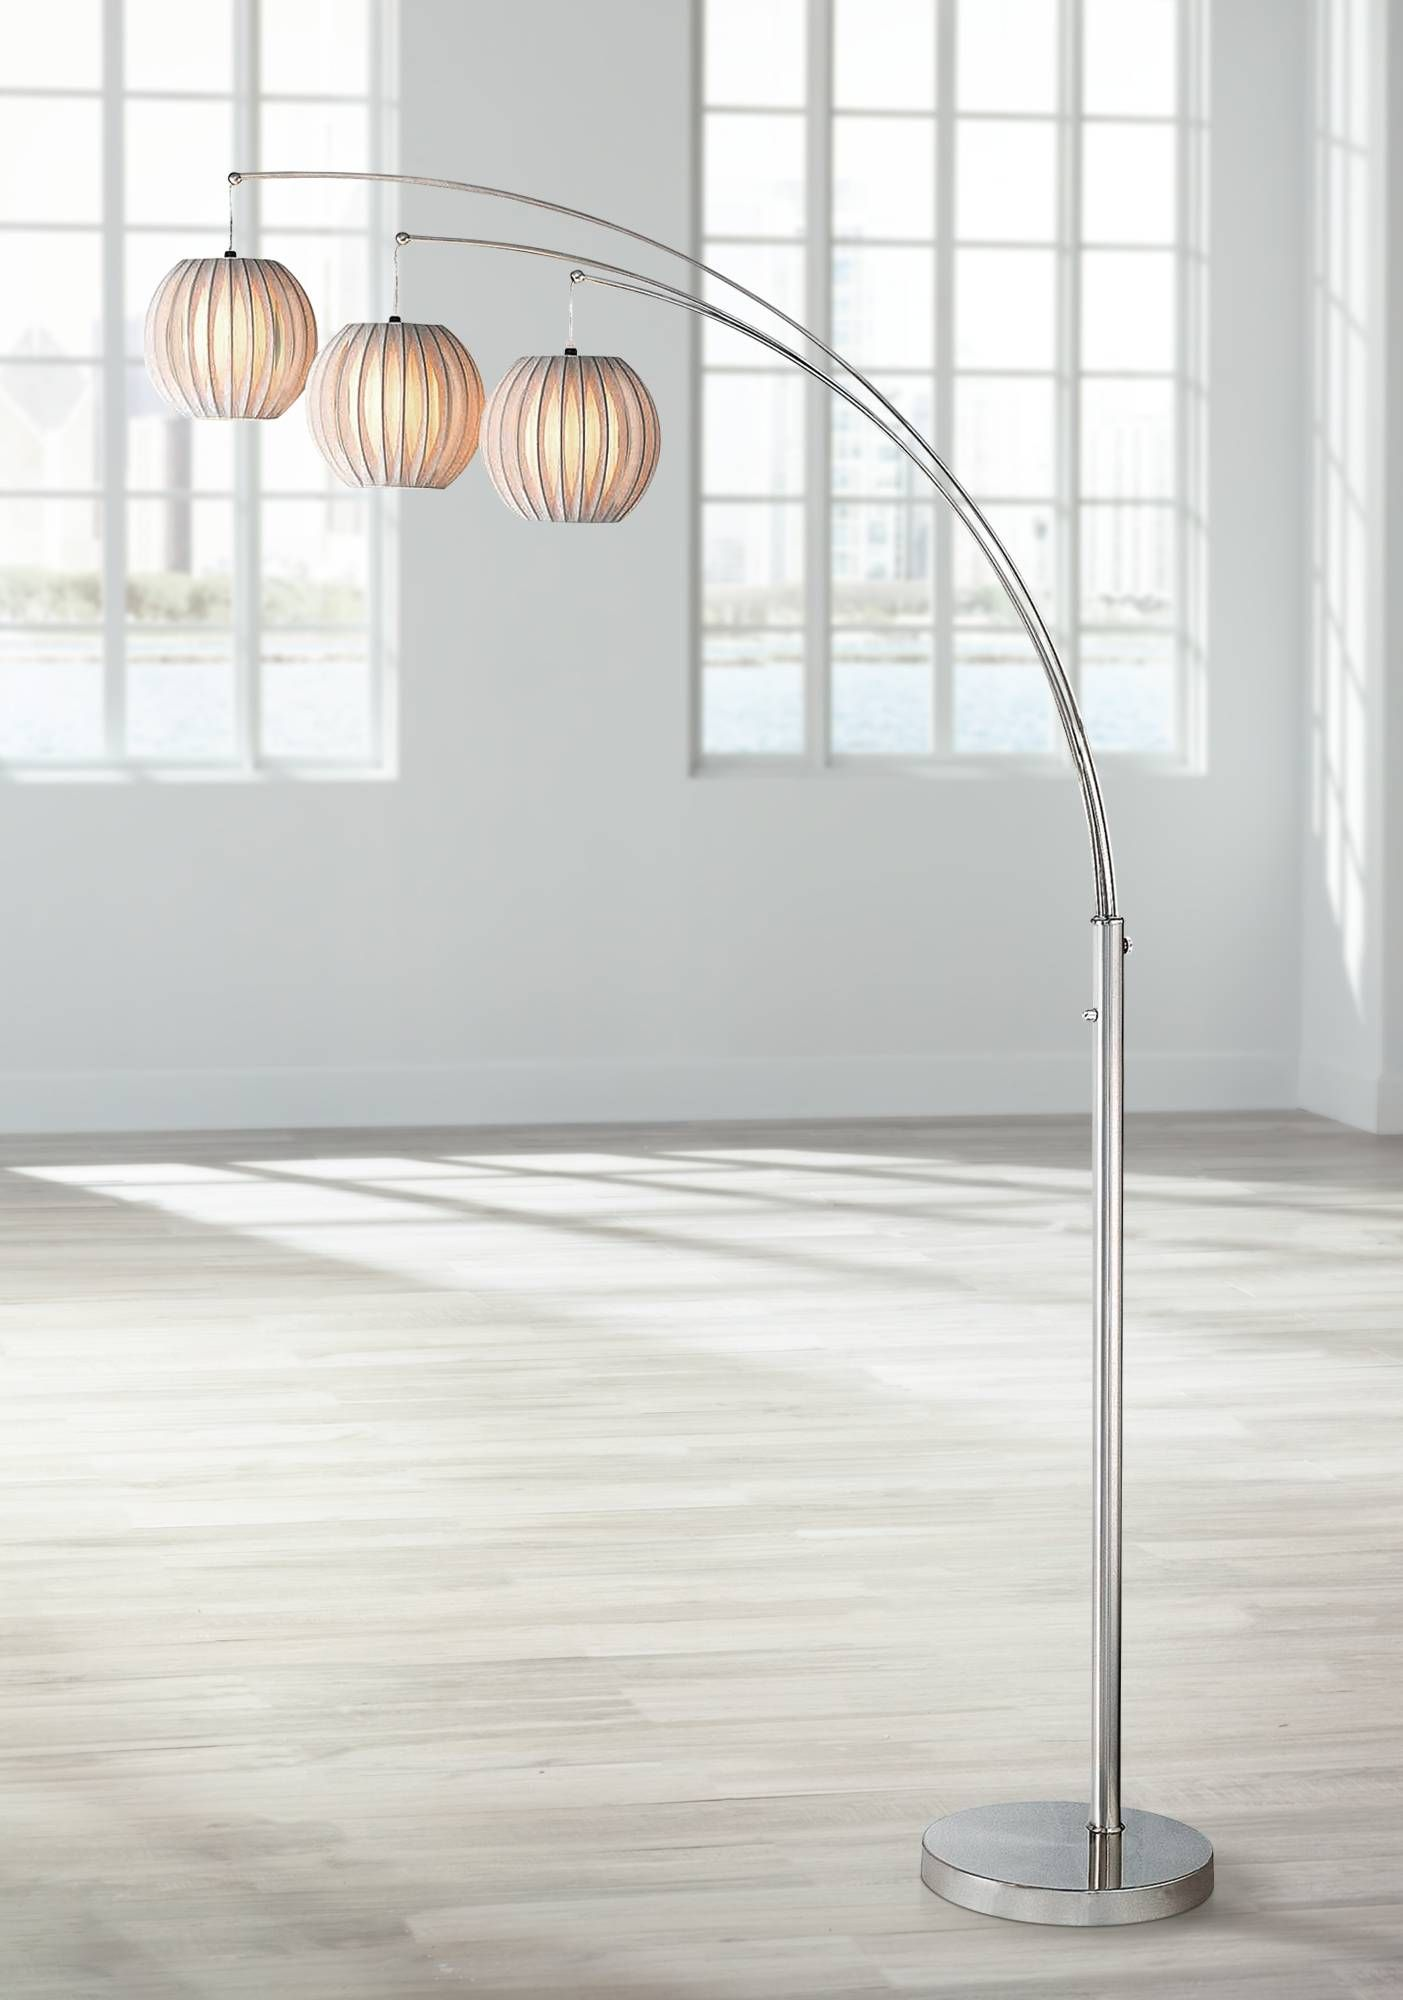 Lite source deion 3 light hanging arc floor lamp light up my life lite source deion 3 light hanging arc floor lamp n1912 lamps plus aloadofball Gallery